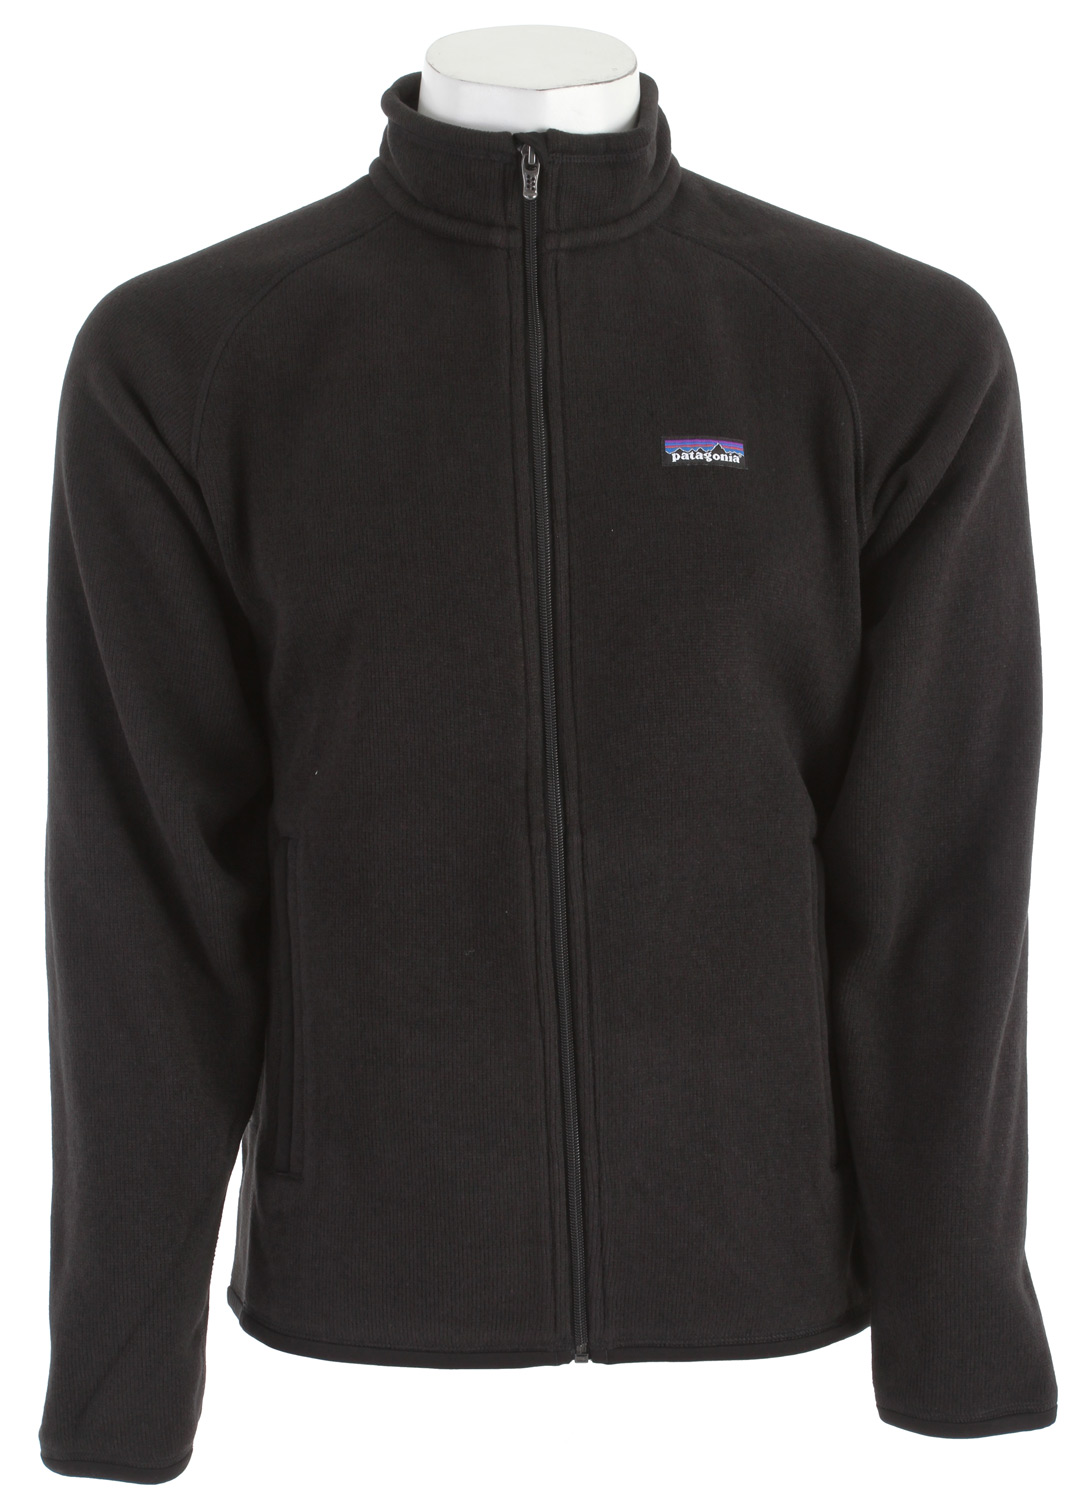 A soft, full-zip polyester fleece jacket with a sweater-knit face and warm fleece interior.* Fabric: 9.5-oz 100% polyester with a sweater-knit exterior and fleece interior * Fabric has a sweater-knit face, fleece interior and heathered yarns * Full-zip jacket with zip-through, stand-up collar and zipper garage * Raglan sleeves for pack-wearing comfort * Two zippered handwarmer pockets * Micropolyester jersey trim on cuffs, hem and back of neck * Can be worn with layers as outerwear or as a midlayer under a shell * Hip length - $92.95